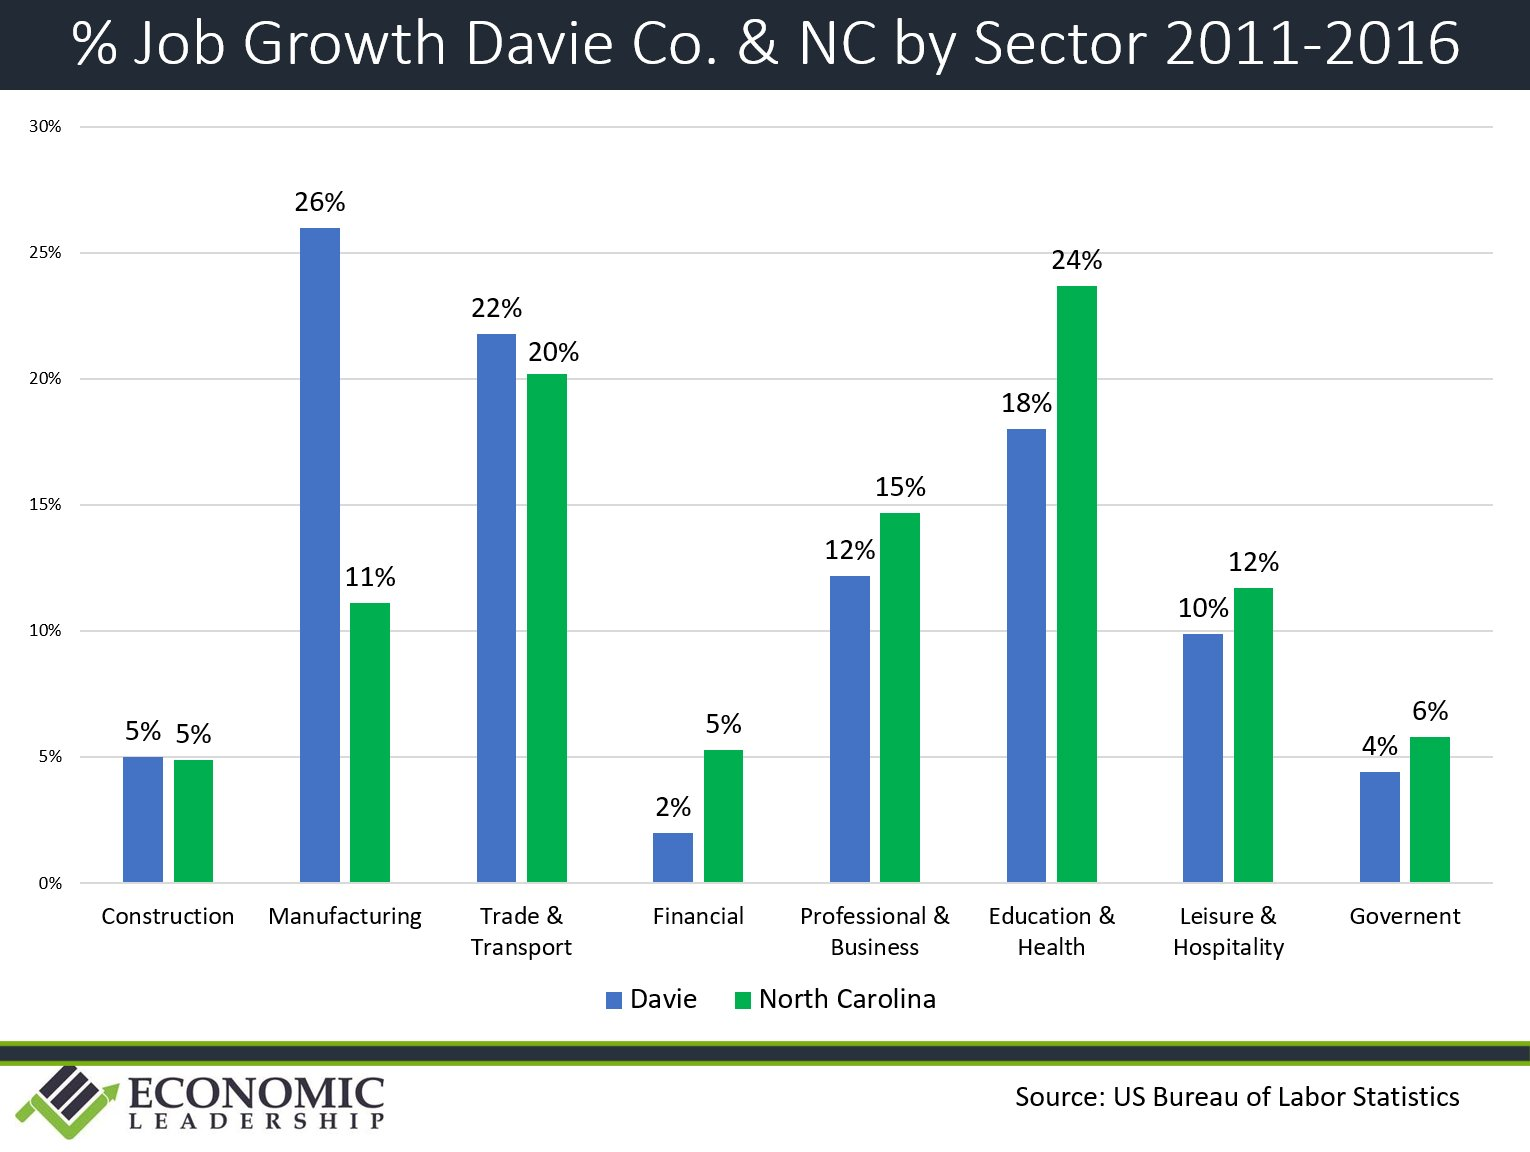 job-growth-by-sector-2011-2016